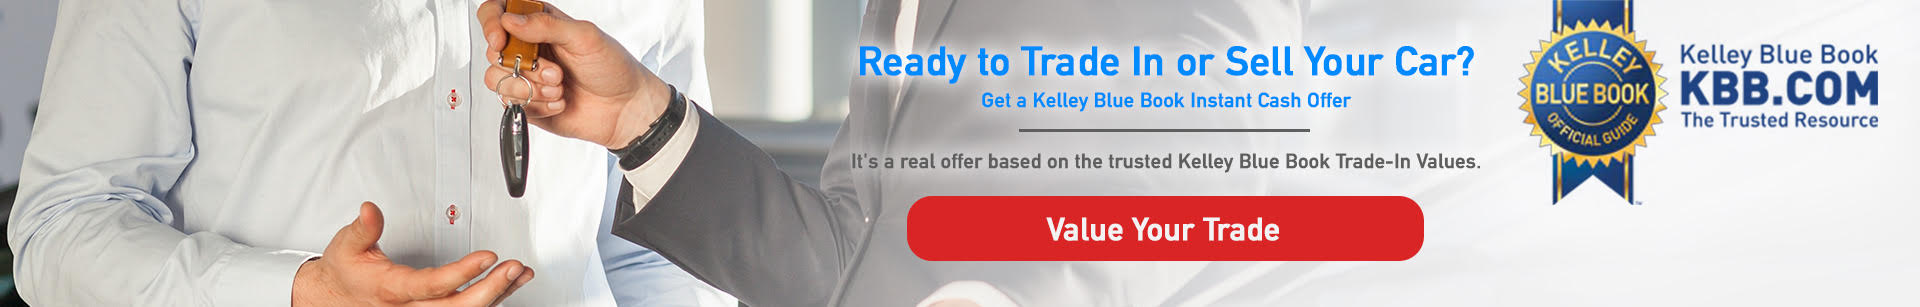 Buy Your Trade